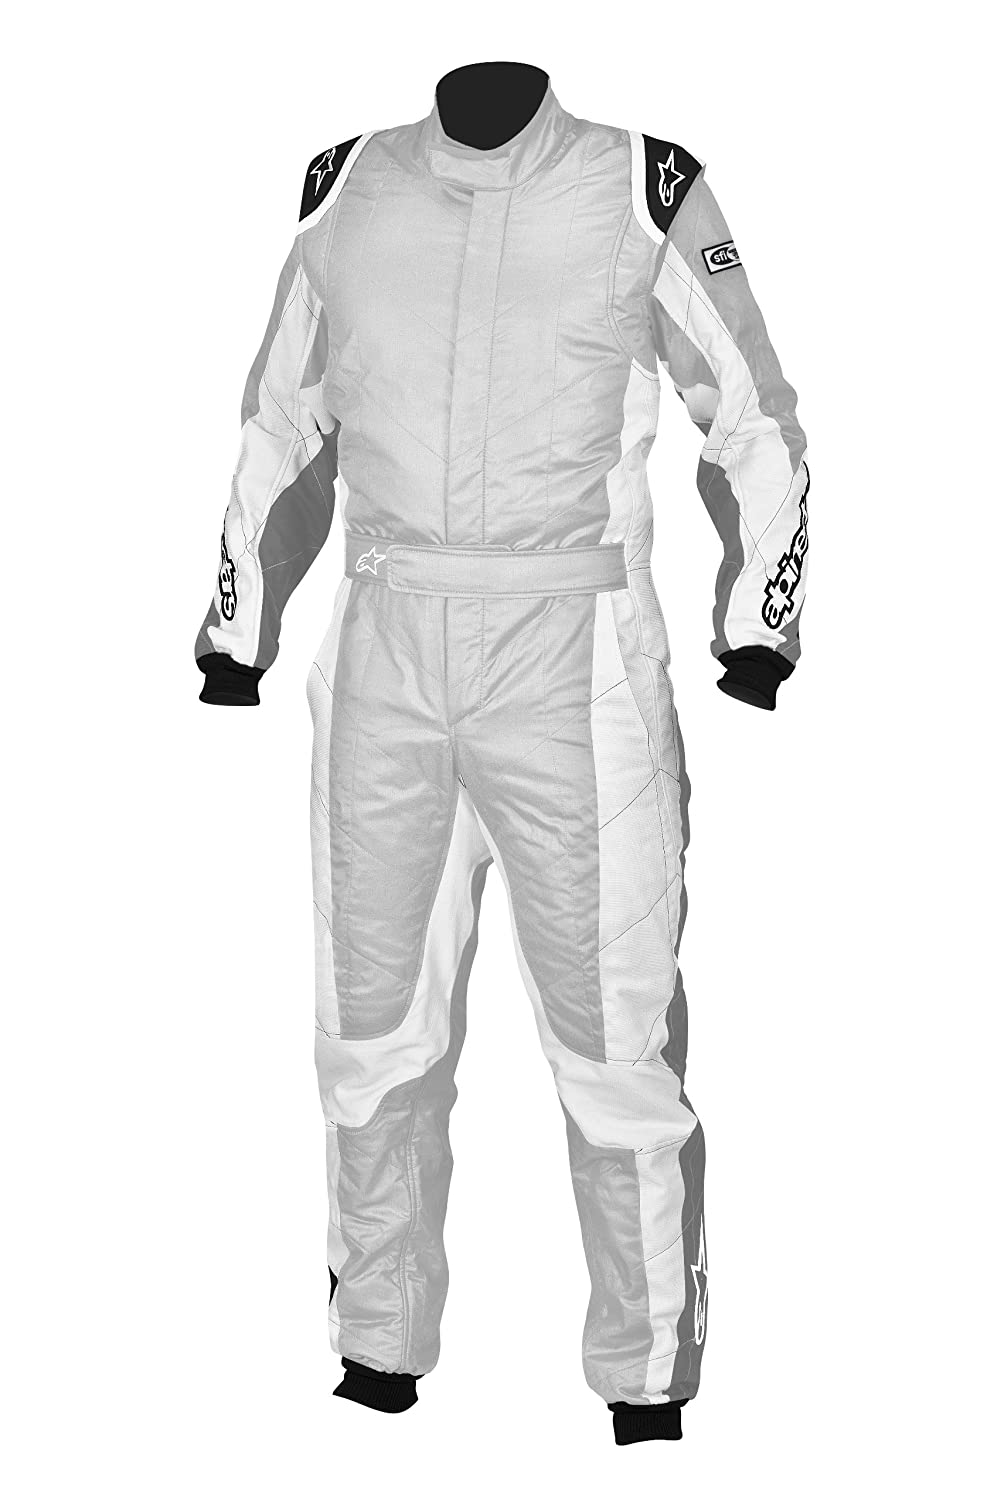 Alpinestars 3354113-192-58 Silver//White Size-58 GP Tech Suit